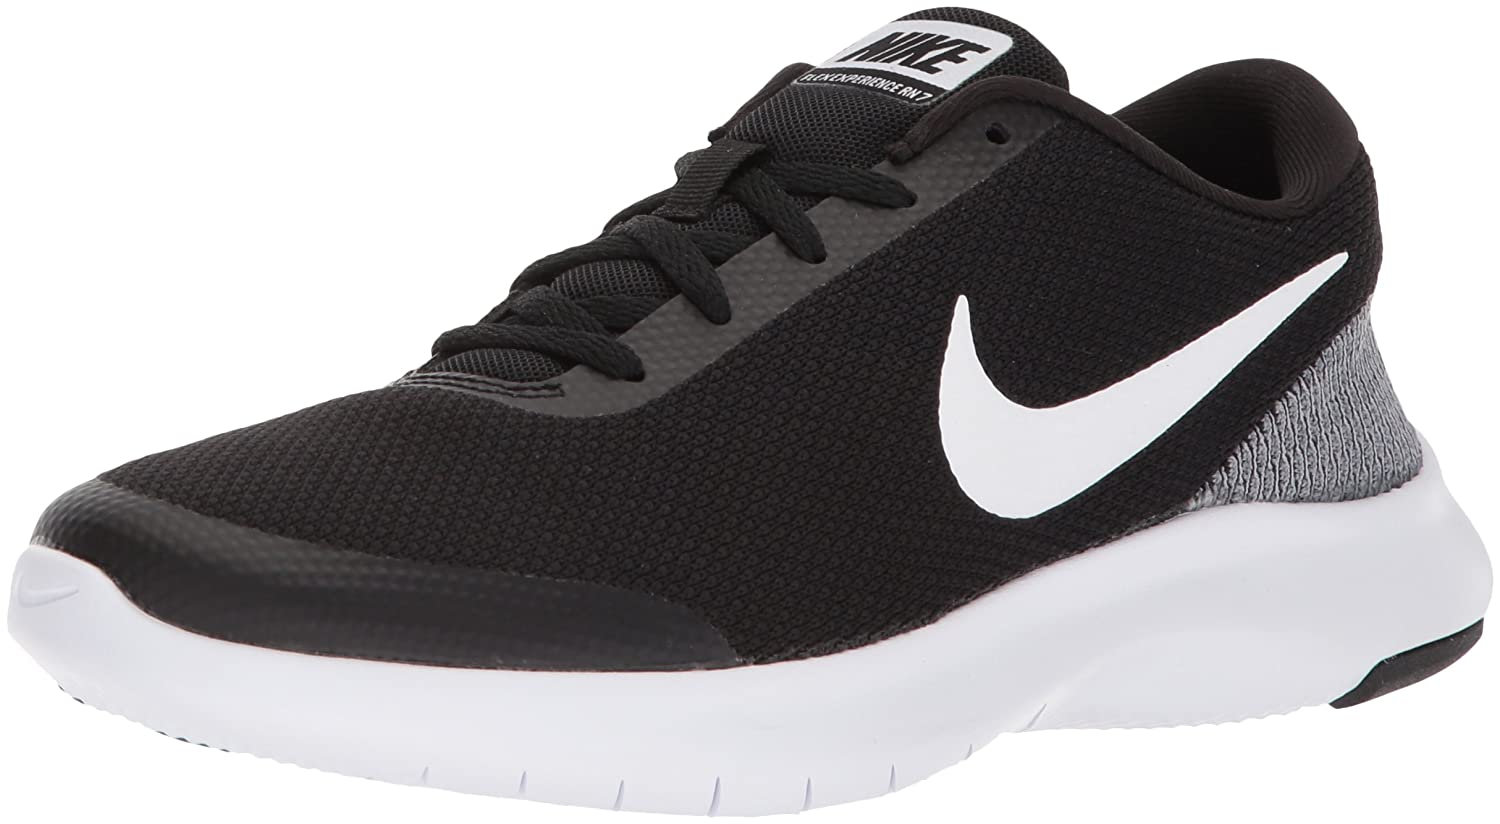 NIKE Women's Flex Experience 7 Wide Running Shoe B071YZXHB1 6 W US|Black/White - White